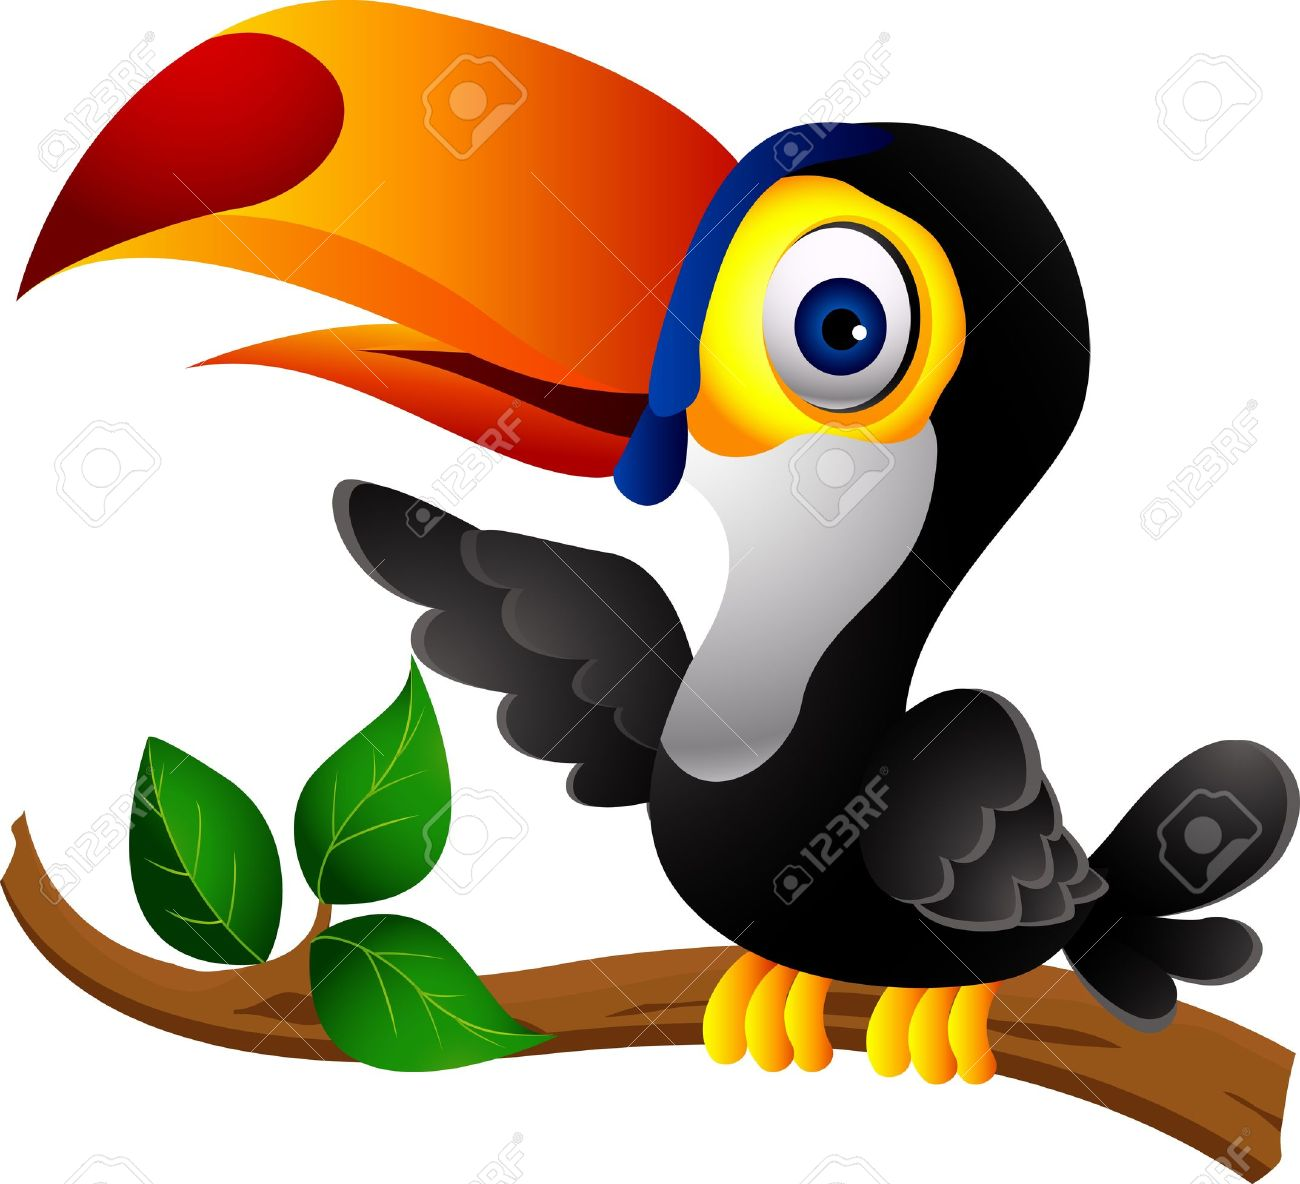 Drawing at getdrawings com. Toucan clipart